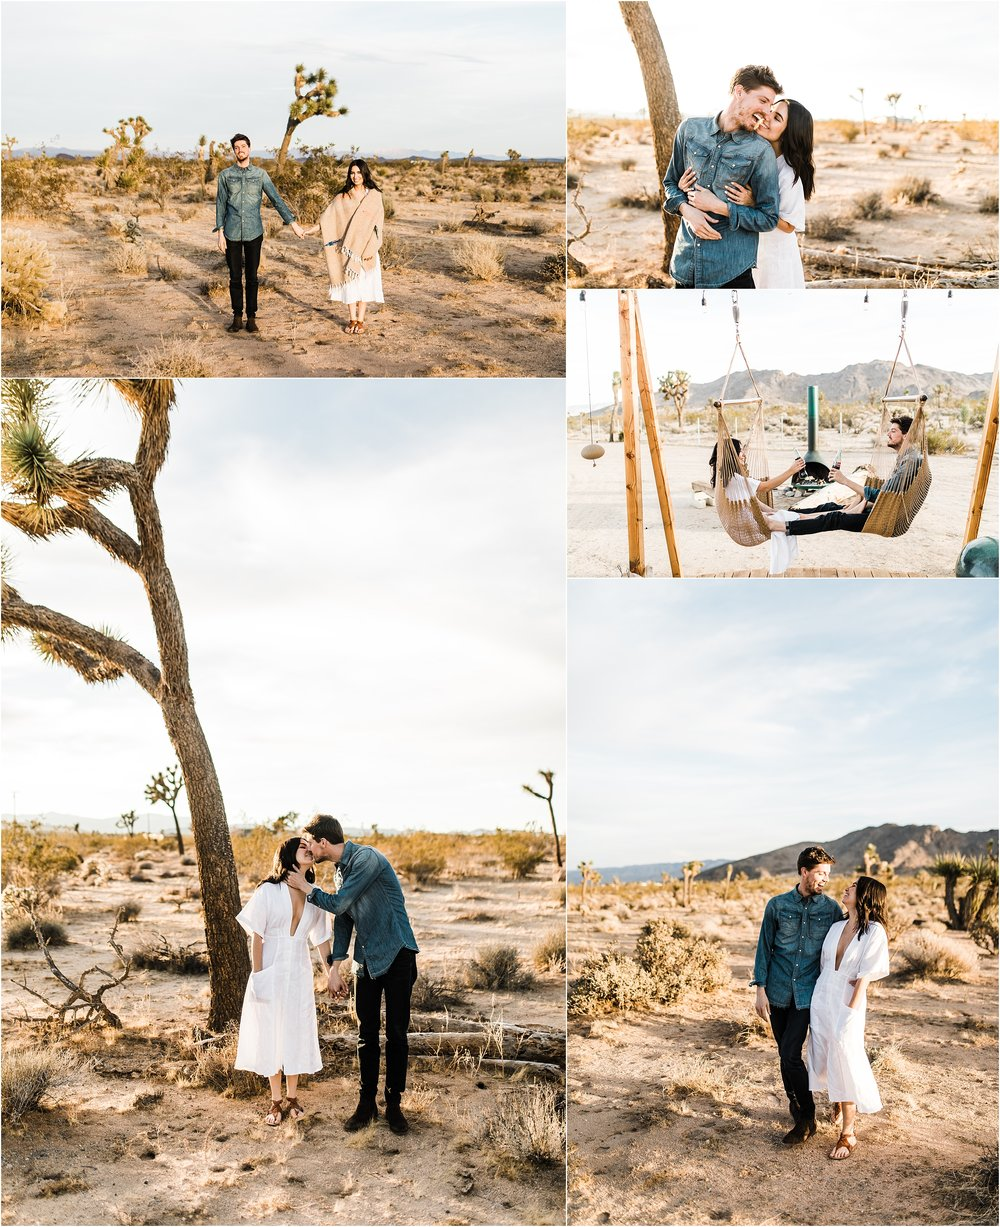 Joshua-Tree-Airstream-National-Park-Engagement-Photos-Clarisse-Rae-Southern-California-Wedding-Photographer-&-Videographer